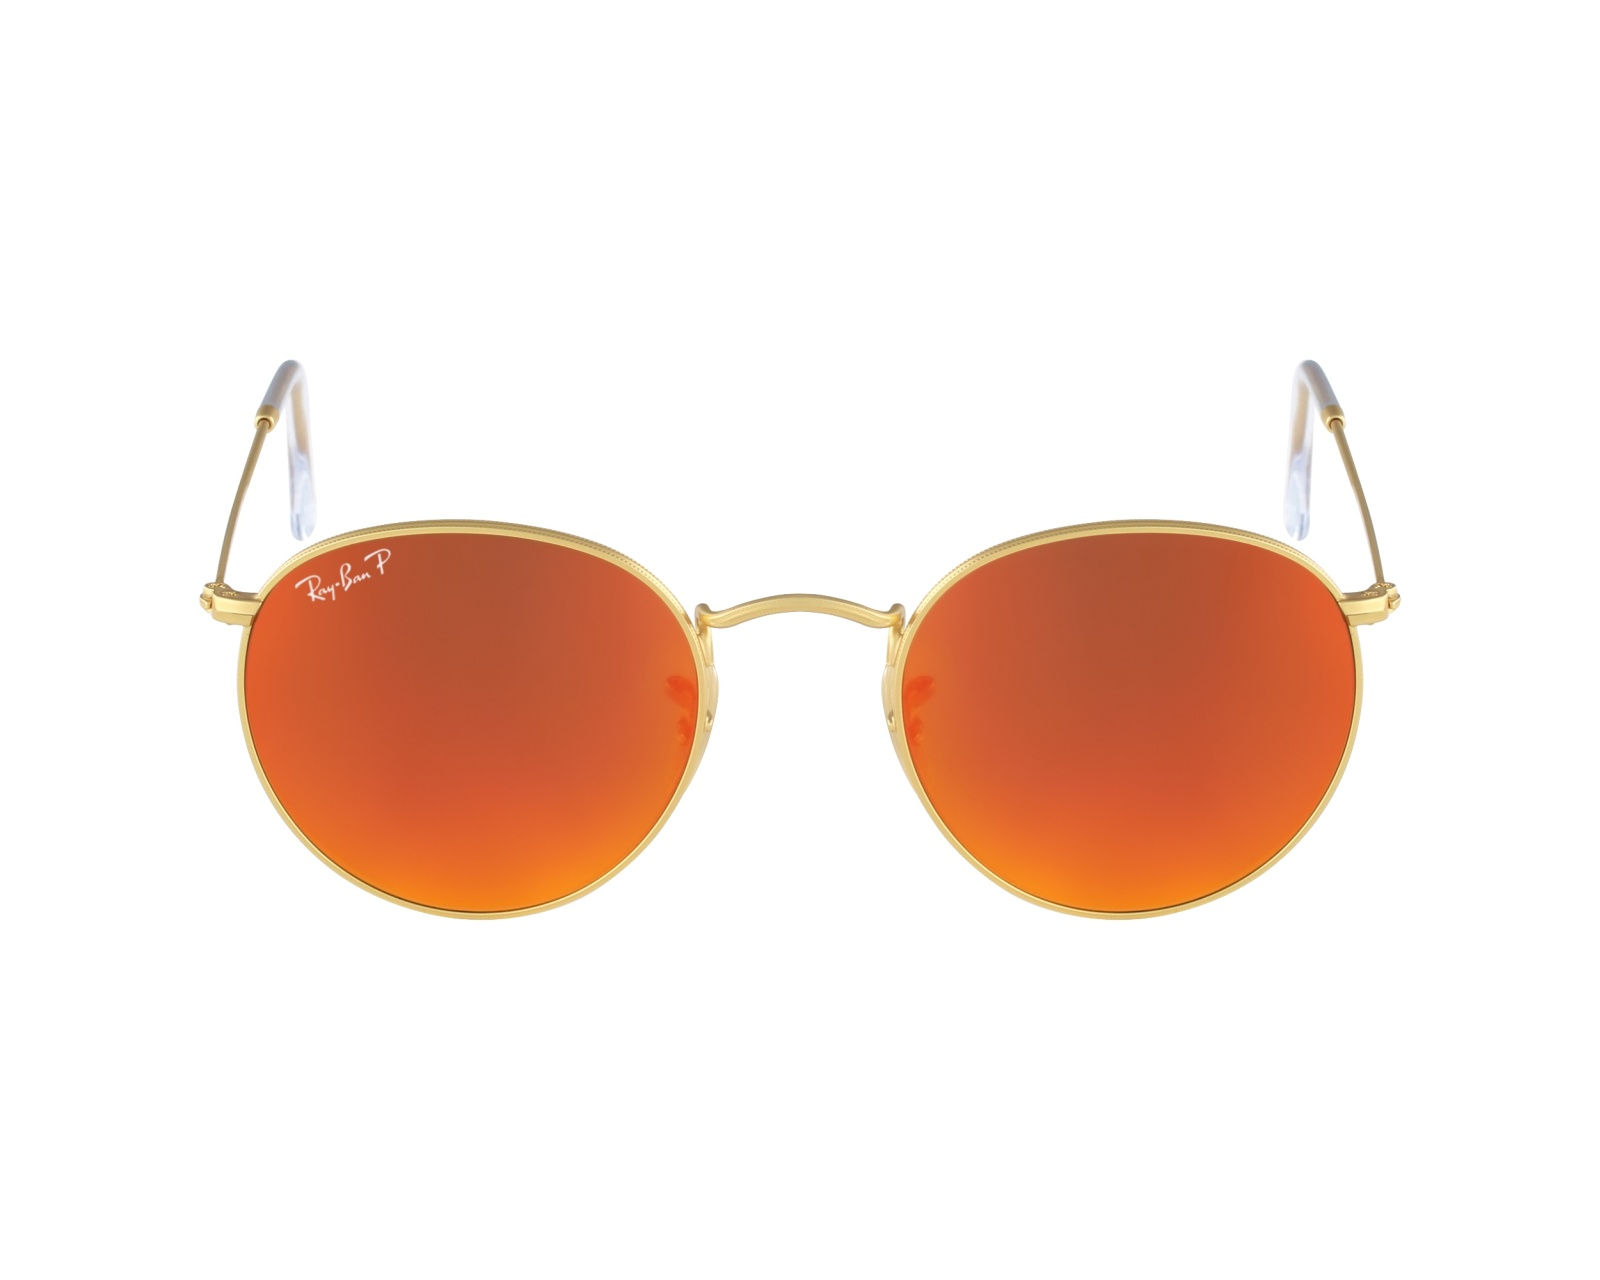 bon out x obtenir de nouveaux 2019 original Ray Ban Round Metal RB-3447 112/4D